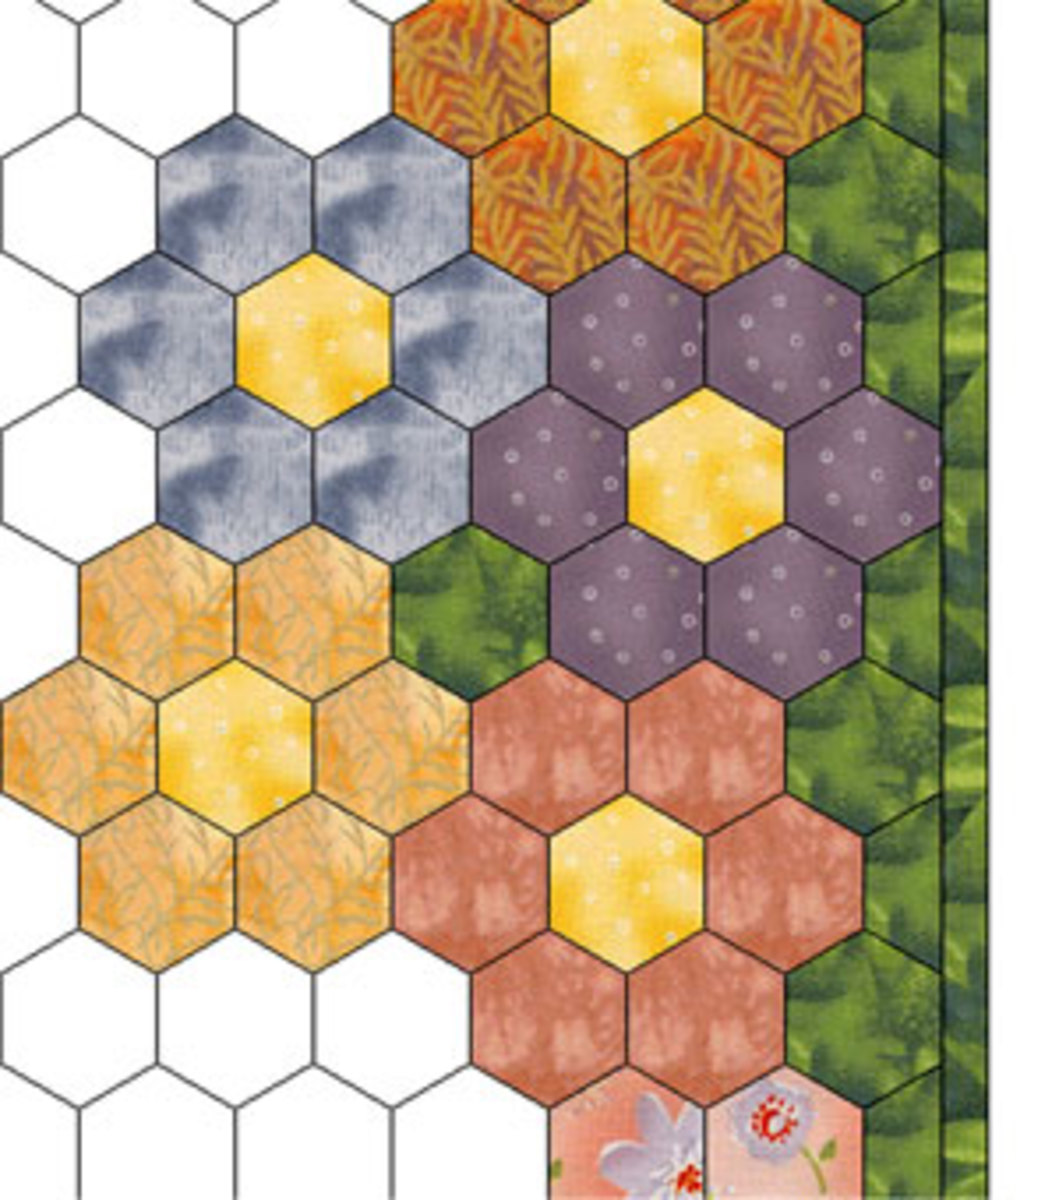 Straighten the edges with half hexagons